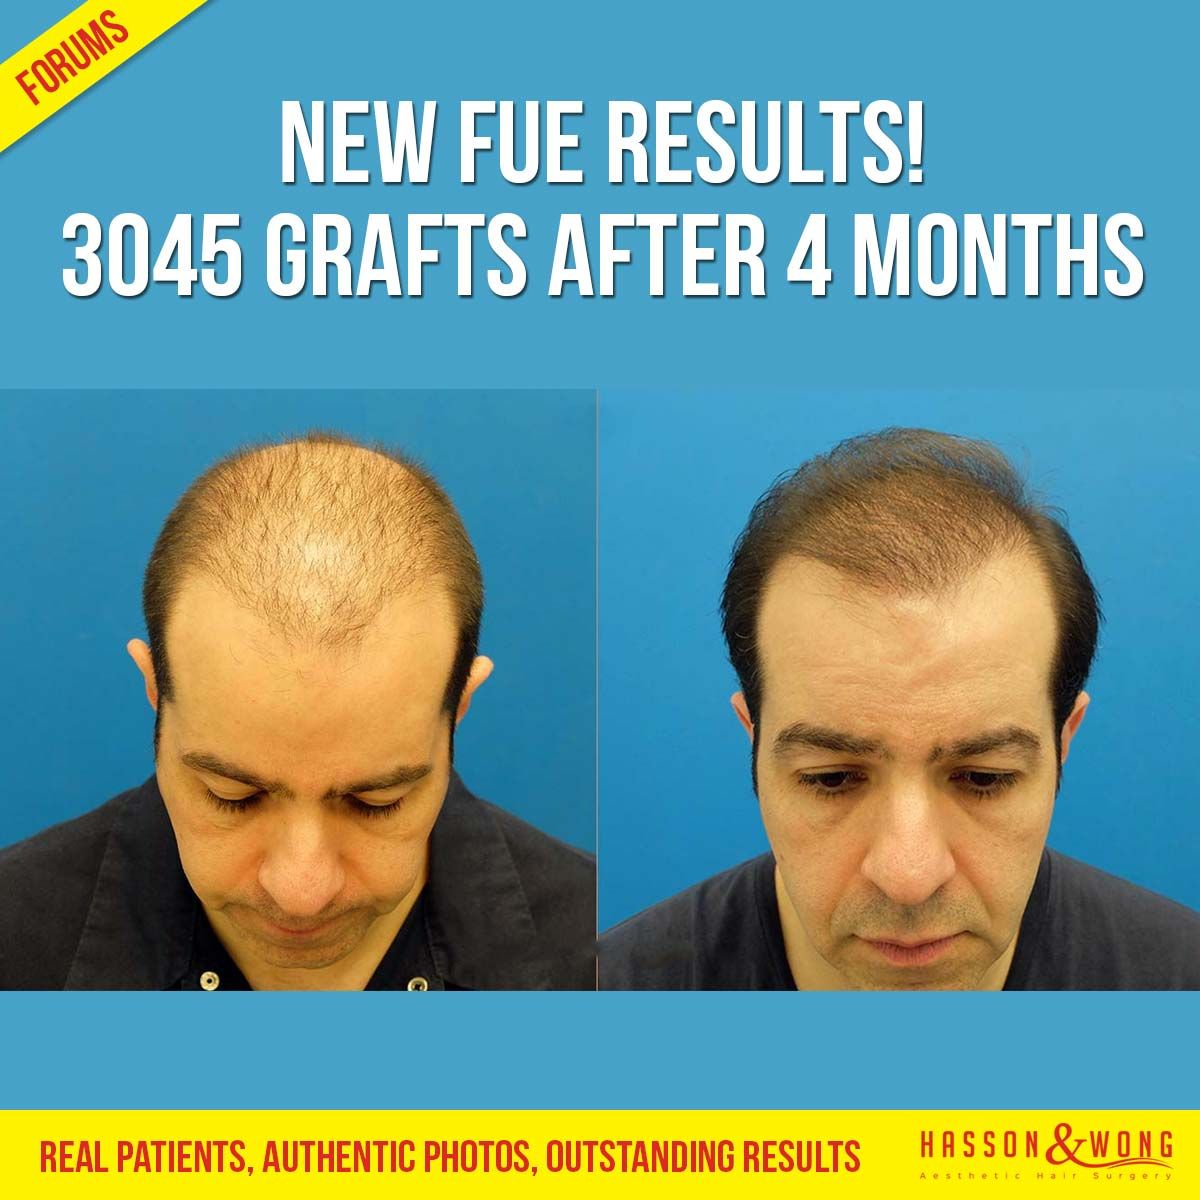 Real patients, real results. See 4 months growth after 3045 FUE grafts. http://bit.ly/29YUwjV #hair #haircut #hairstyle #menshair #hair-loss #hairloss #bald #hairtransplant #hair-transplant #hassonandwong #transplant #nofilter